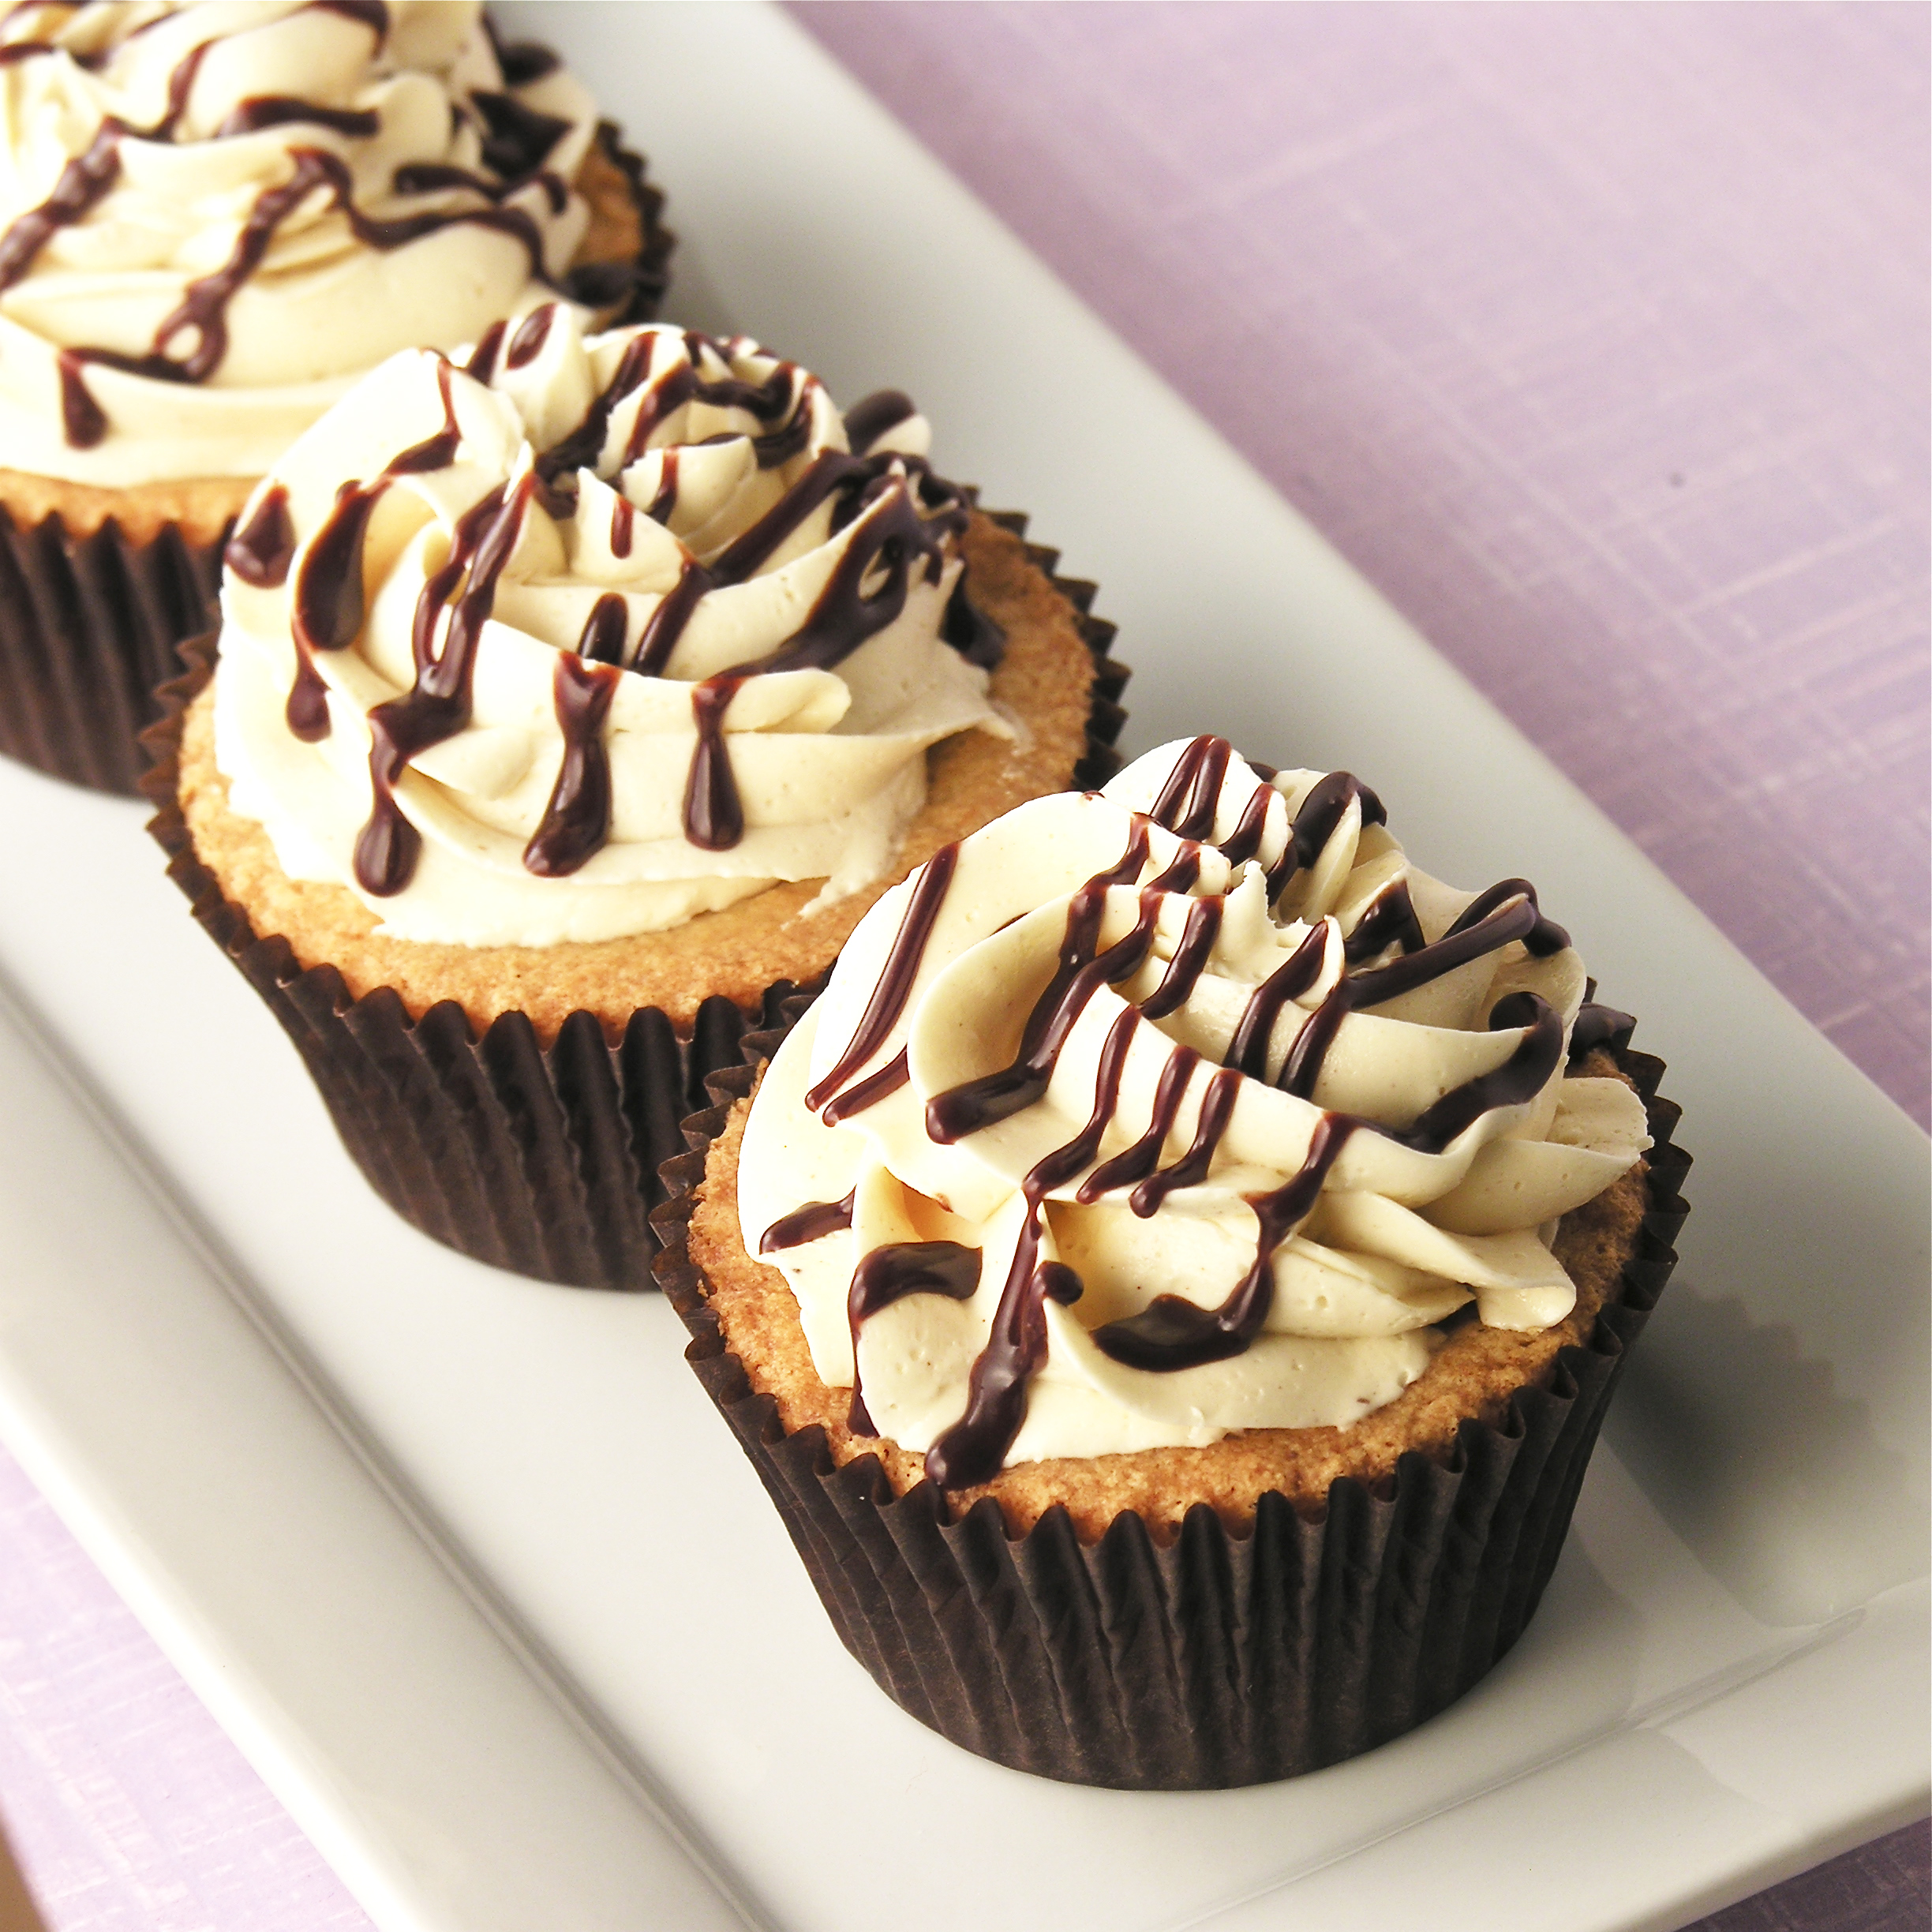 Baileys Irish Cream Cupcakes